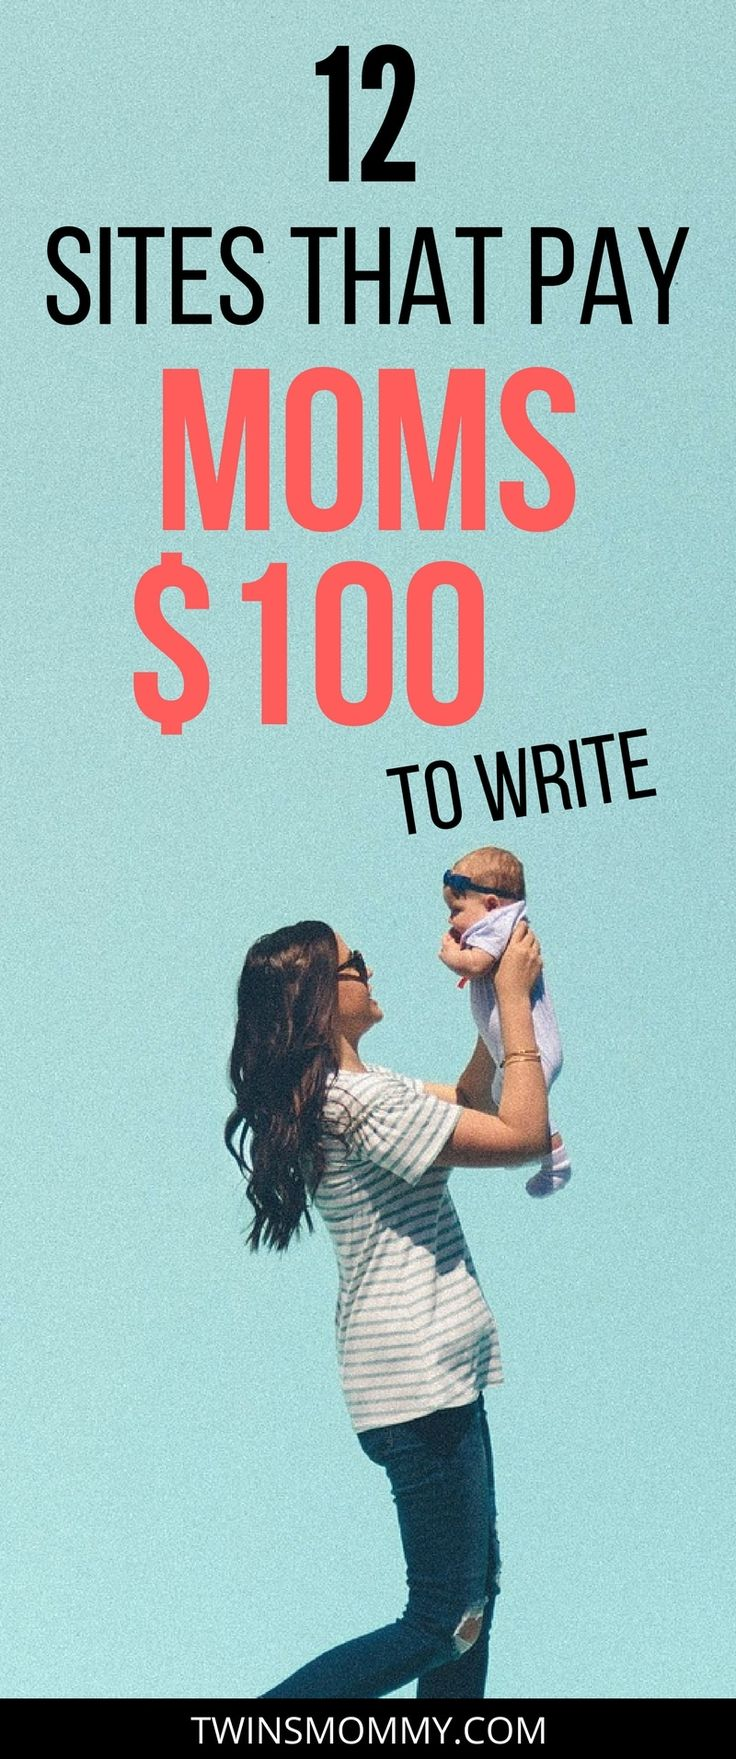 Are you a stay at home mom wanting to make money online as a mom blogger? Did you know that there are websites that pay you to write? Check out these 12 sites that will pay you $100 to write. blogging tips | blog tips | work from home | working from home | get paid to write